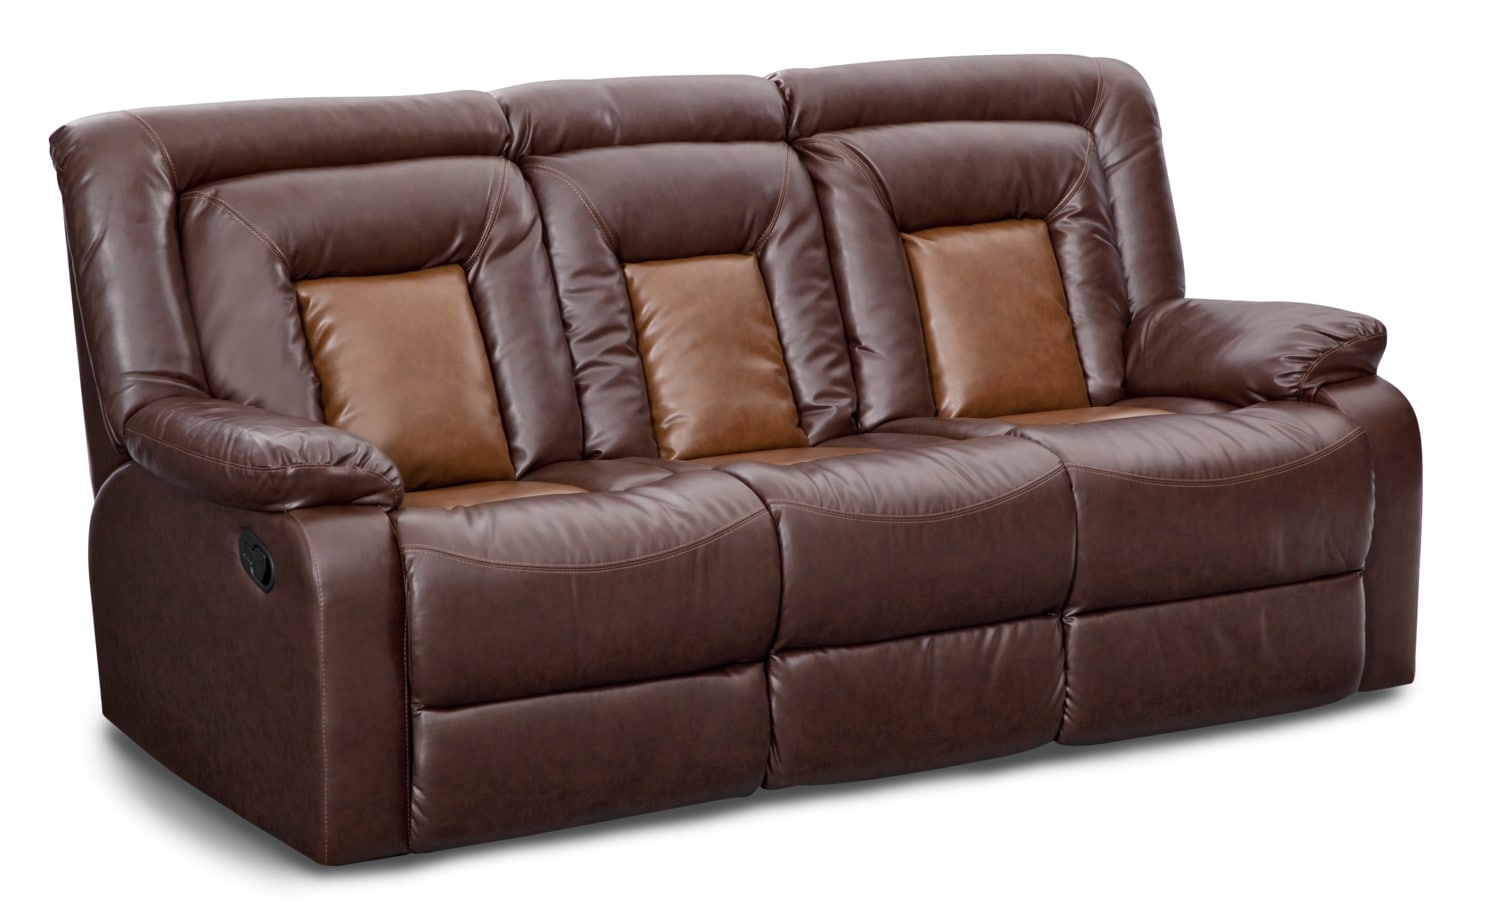 Dual reclining sofas reclining sofas manual recliner couches thesofa Couches and loveseats